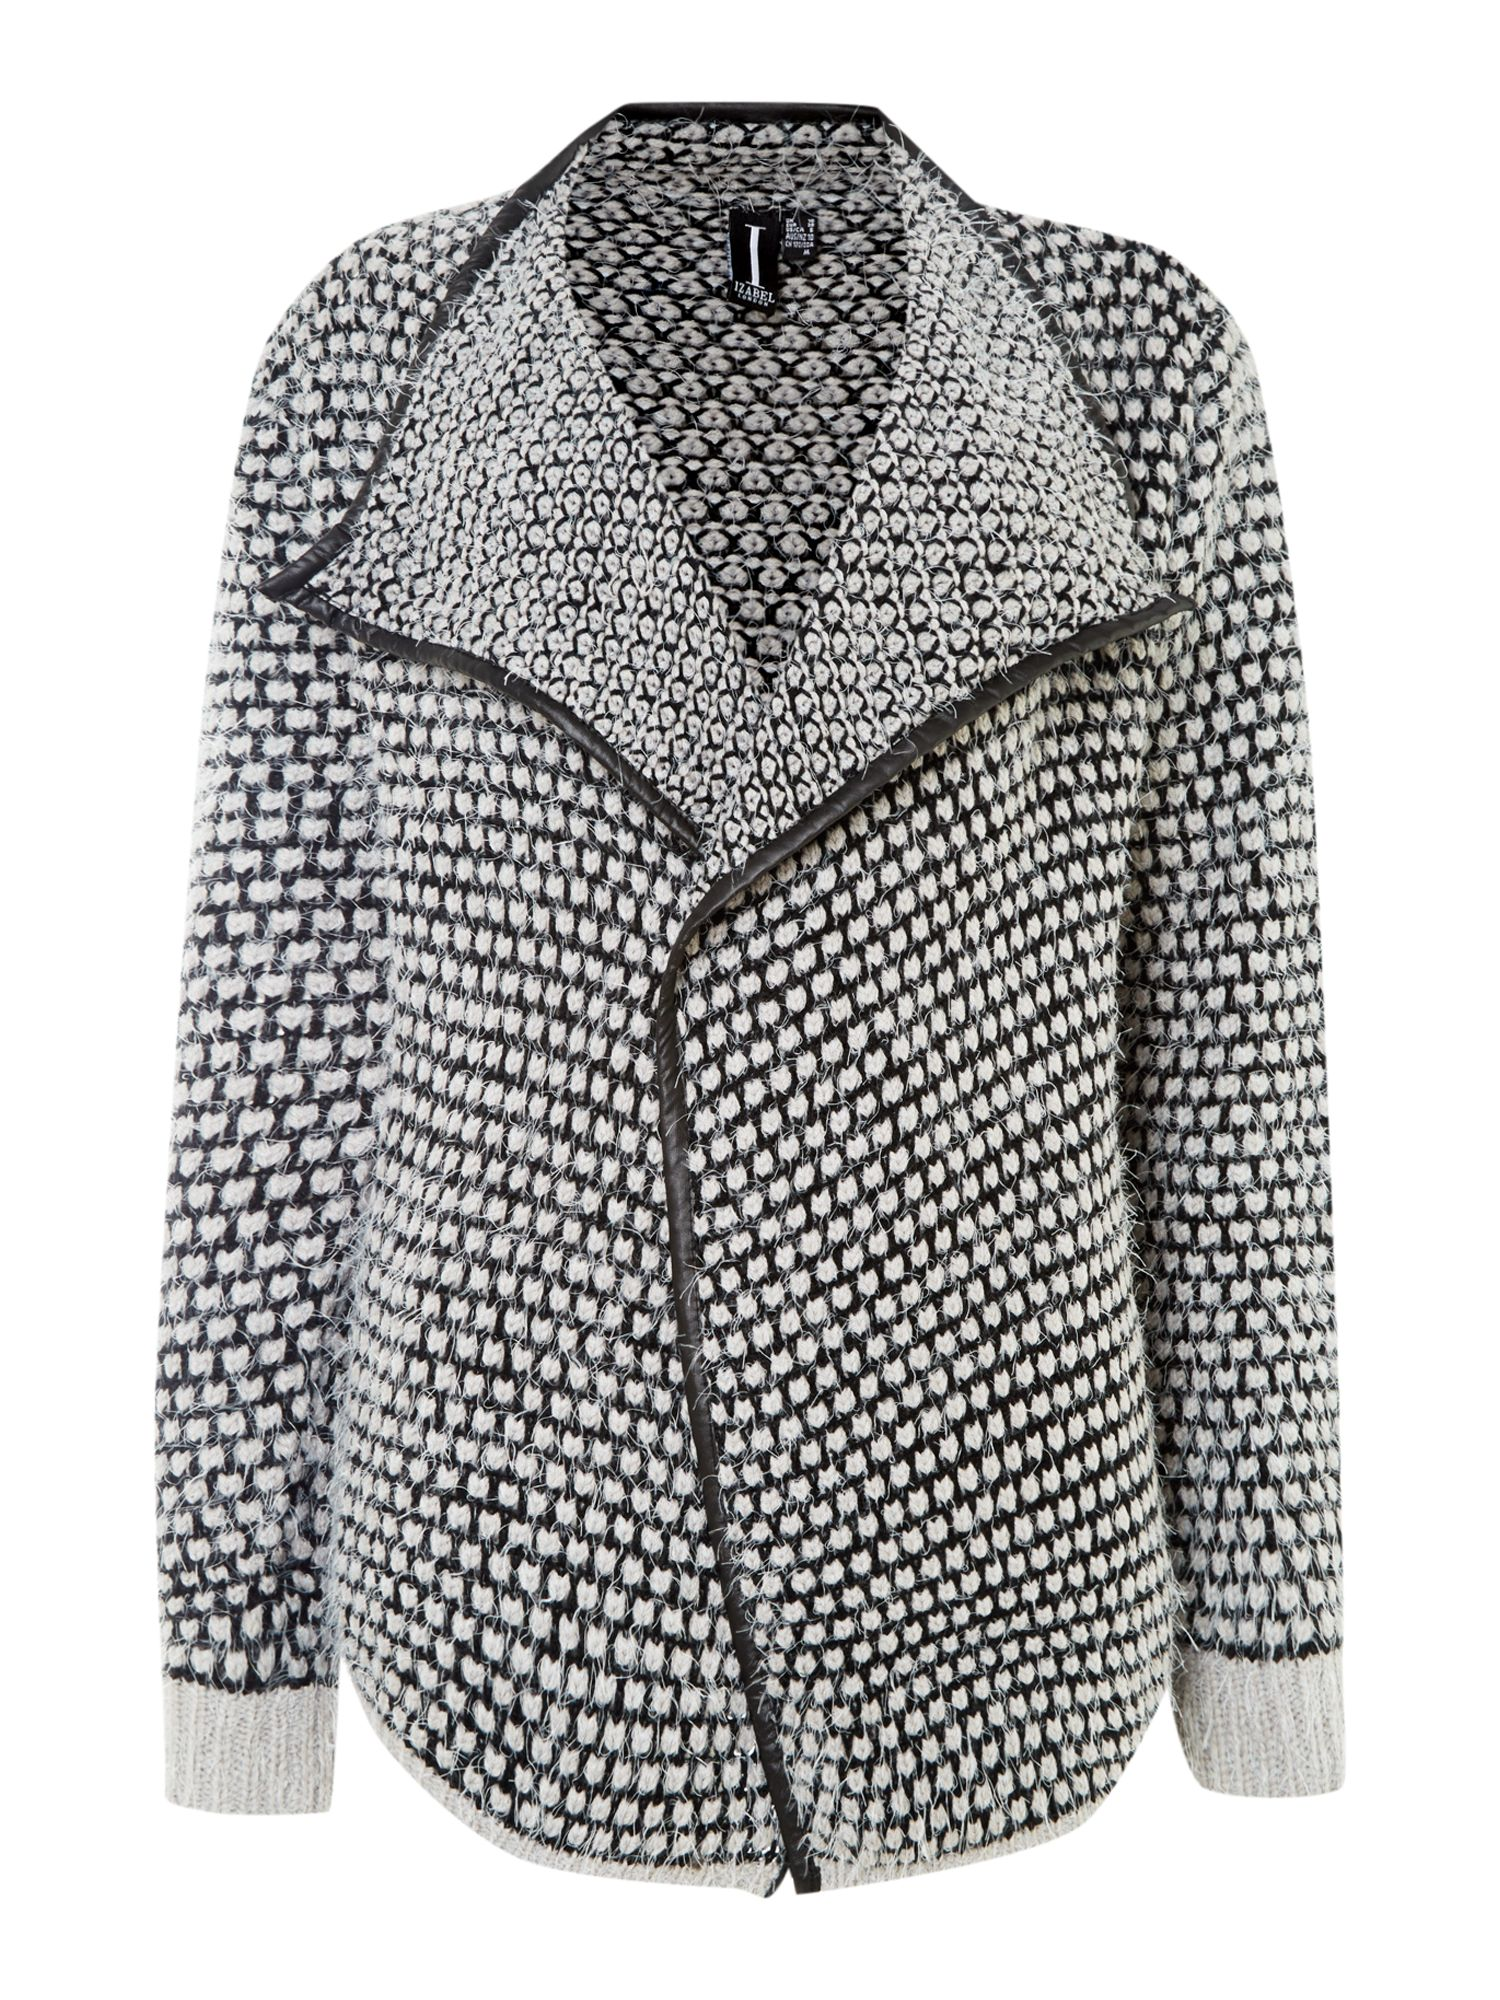 Dotted knit cardigan with PU trim